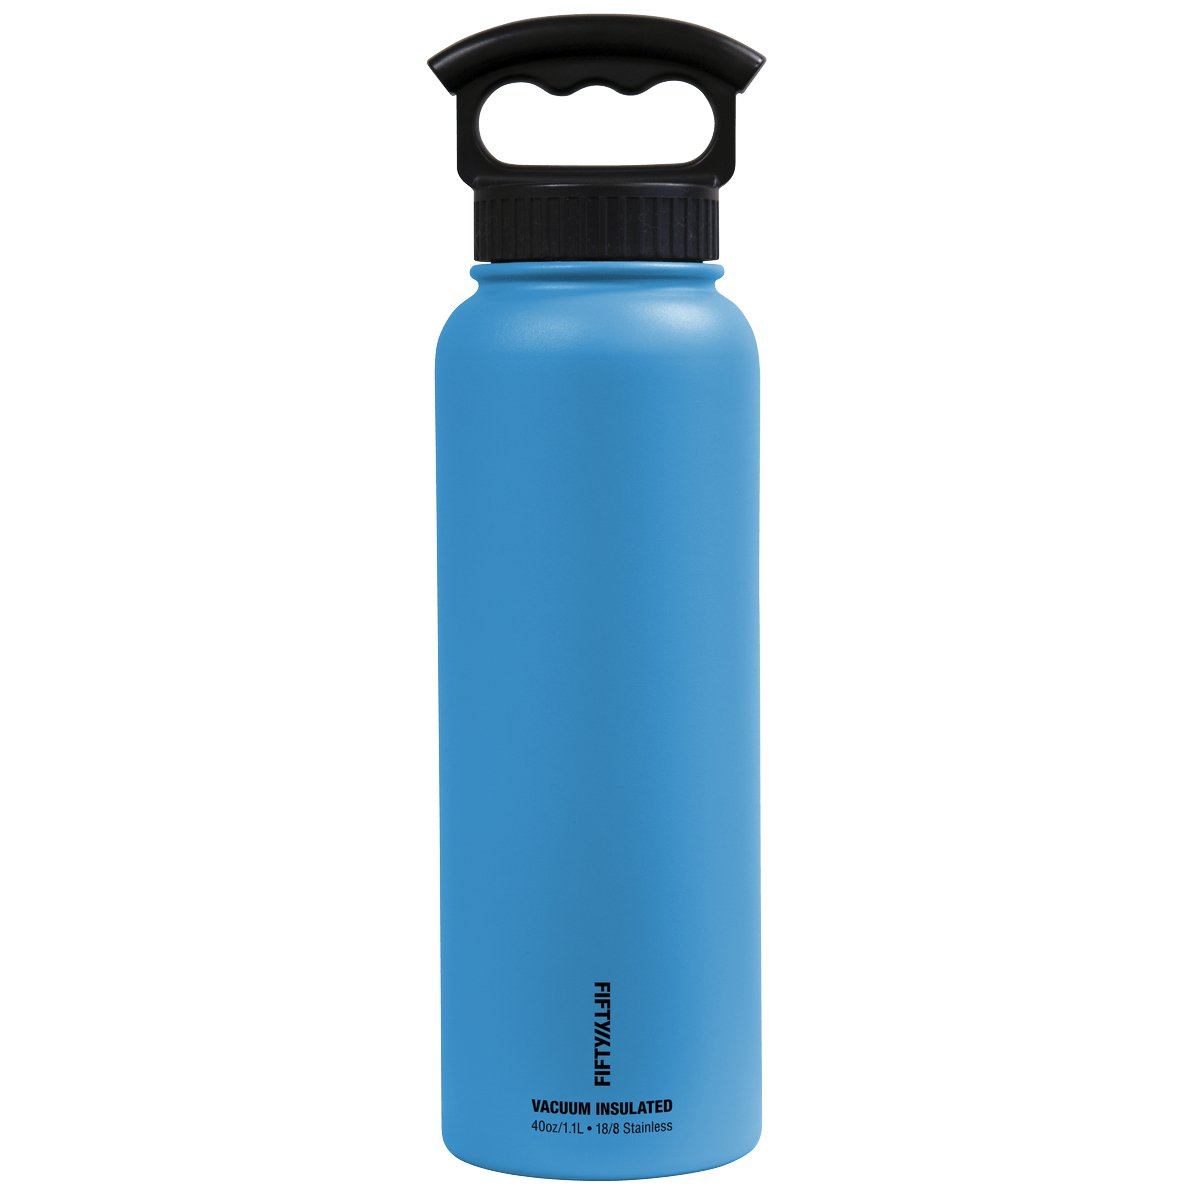 Amazoncom FIFTYFIFTY Vacuum Insulated Stainless Steel Bottle with